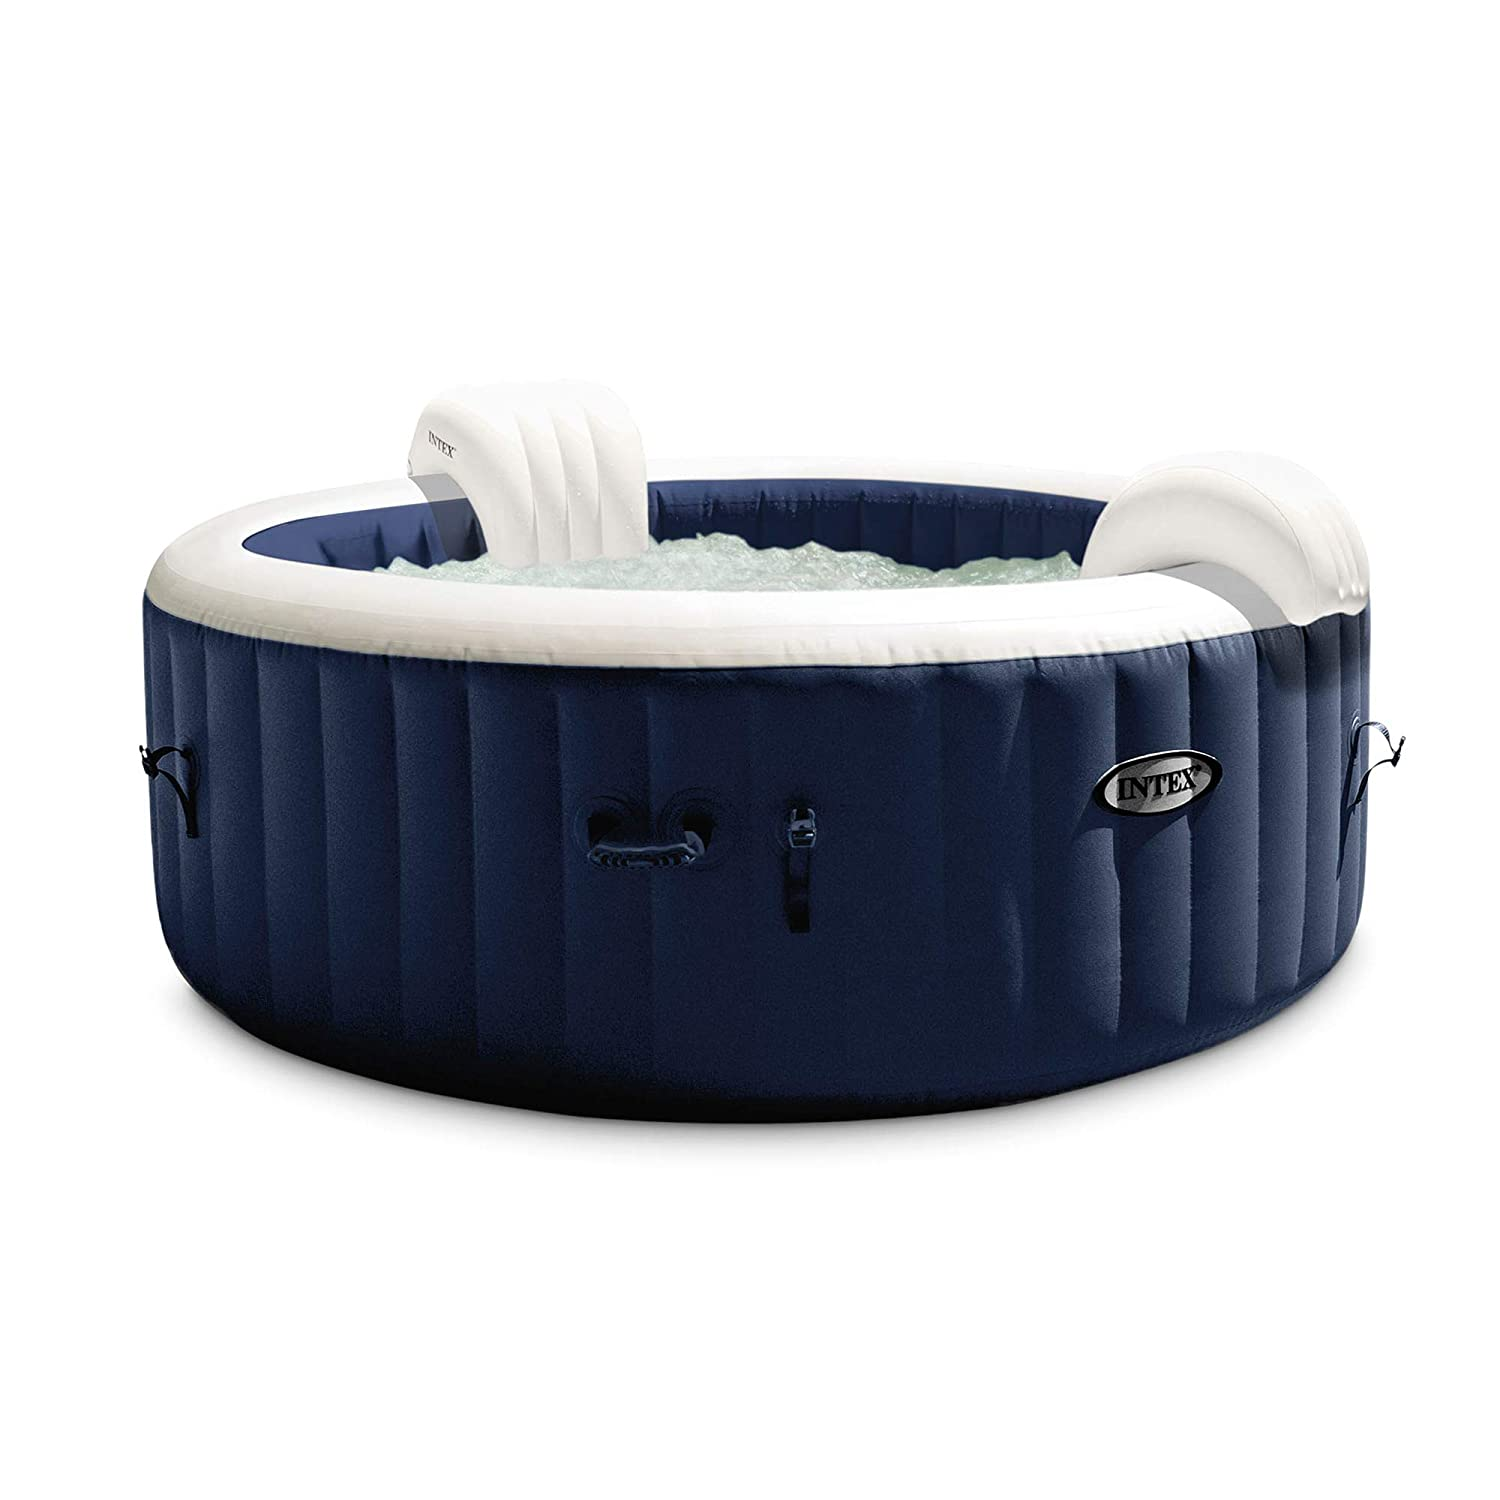 Intex PureSpa Plus Round 6 Person Portable Inflatable Hot Tub Spa 85-Inch x 25-Inch with 170 Bubble Jets and Built in Heater Pump, Navy | 28431E